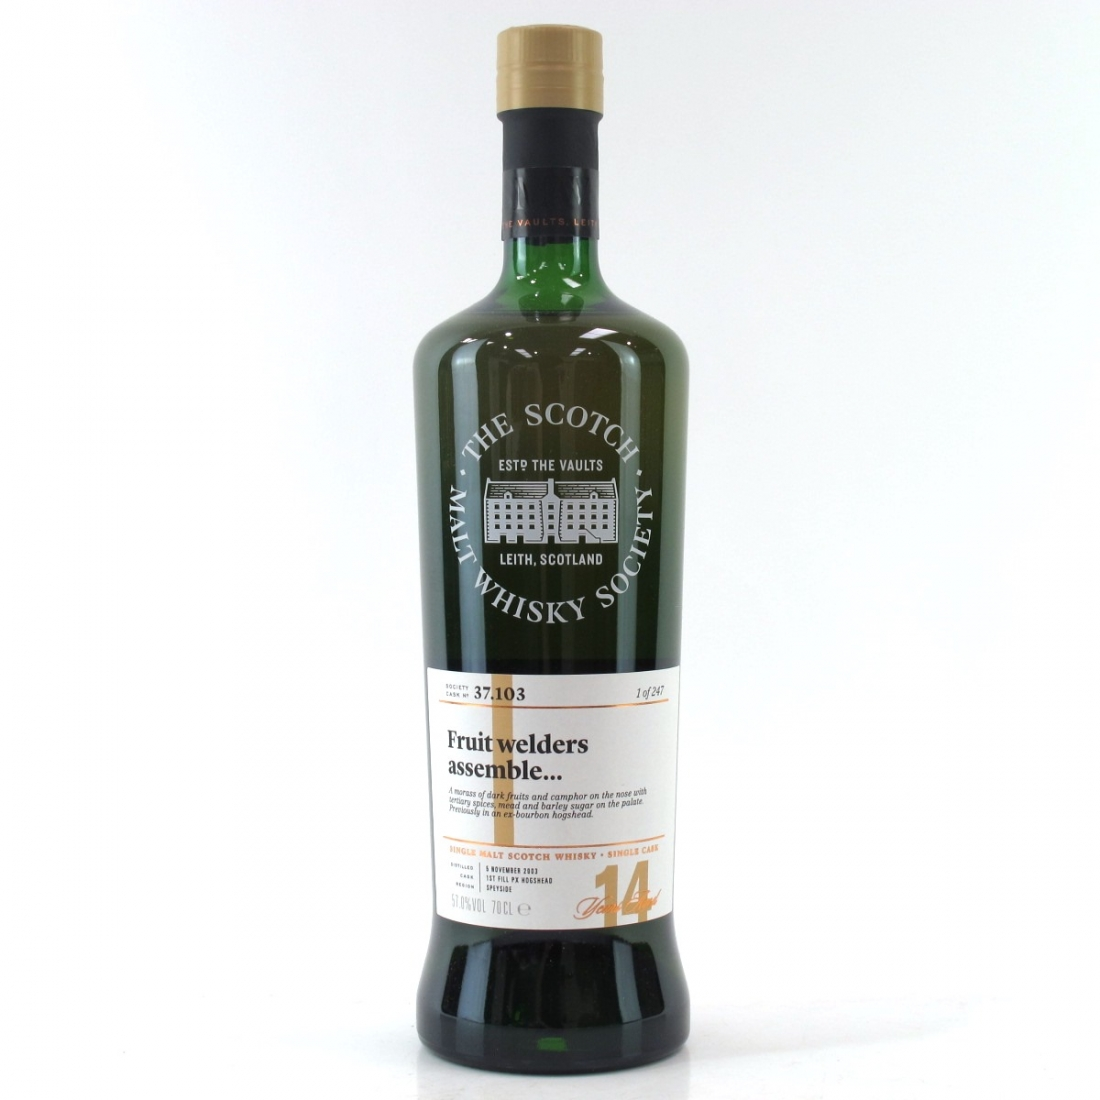 Cragganmore 2003 SMWS 14 Year Old 37.103